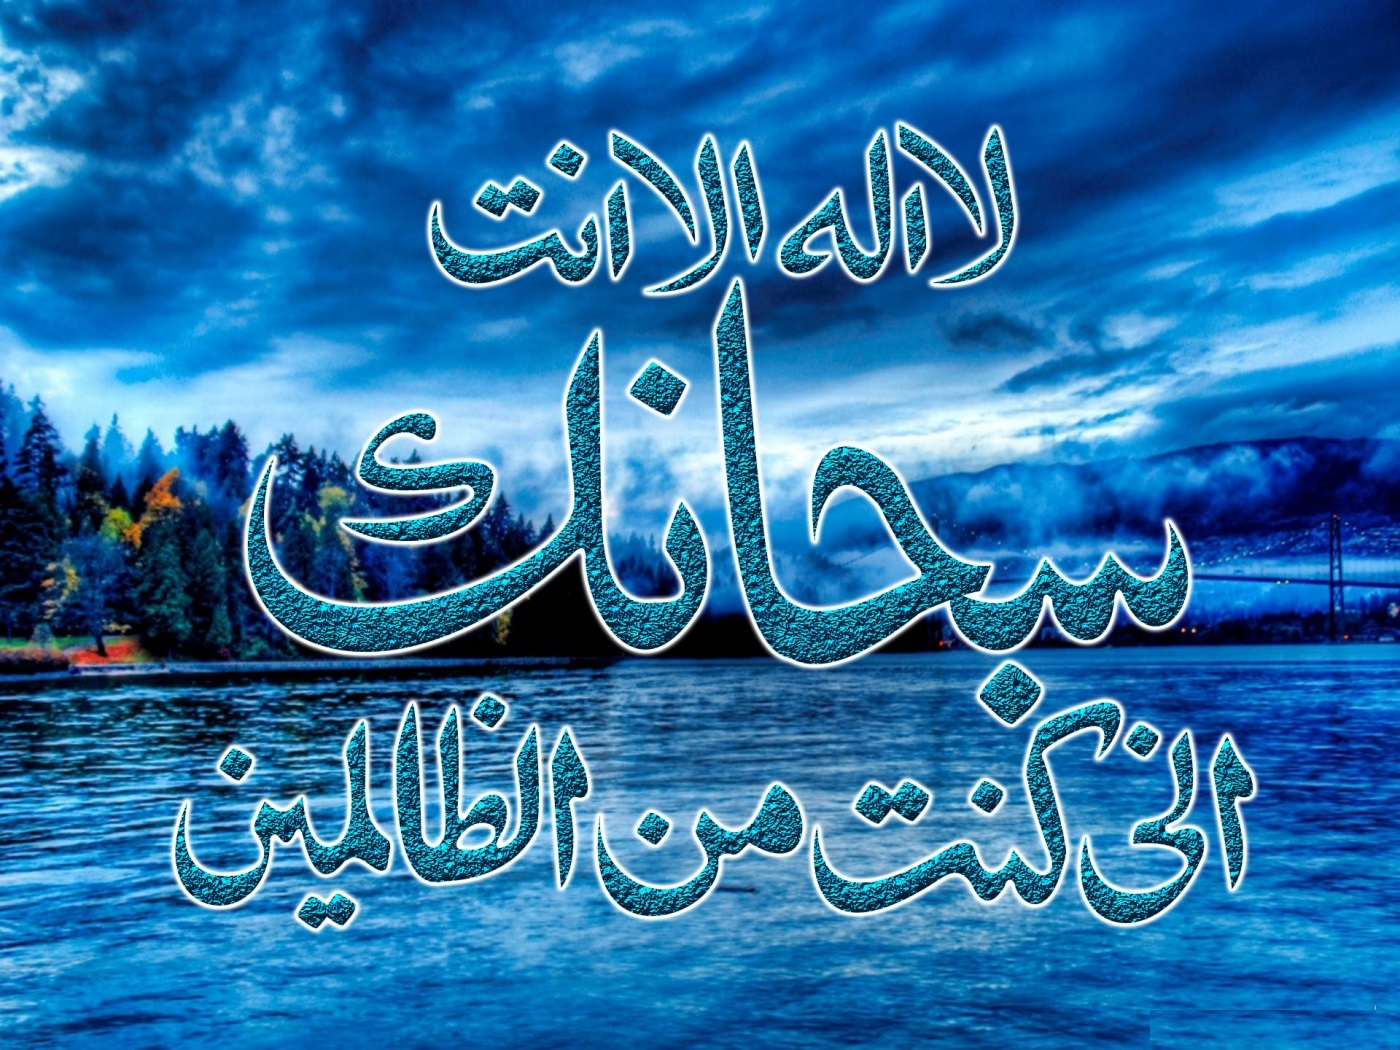 WWW Islamic Wallpaper Free Download